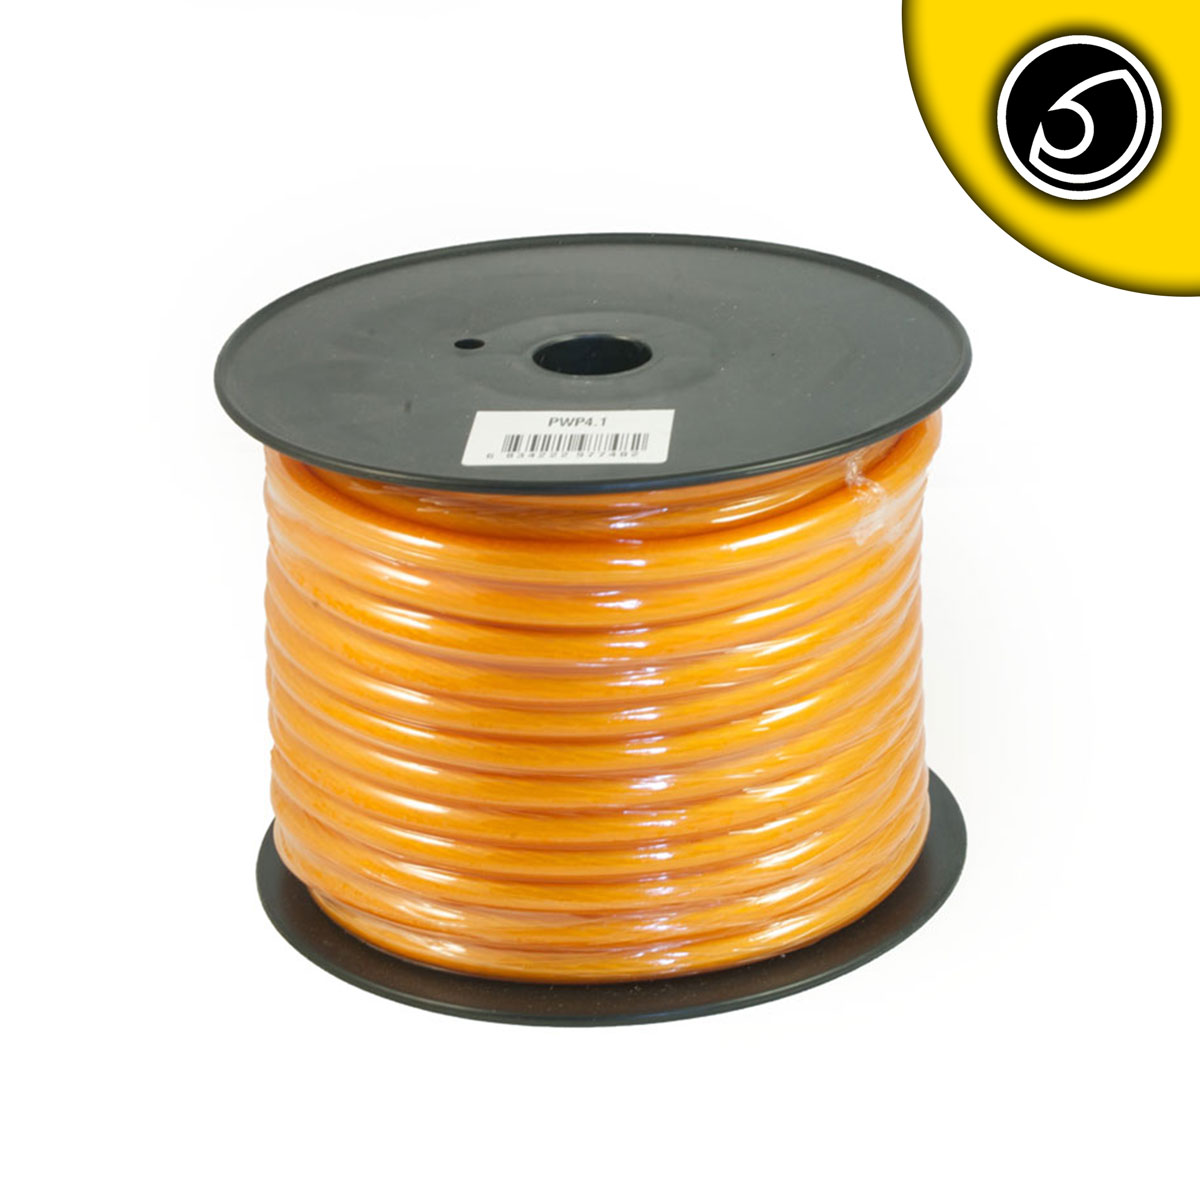 Bassface PWP4.1 CCA 4AWG 21mm Orange Power Wire Cable Spool 30m 1862 Strand